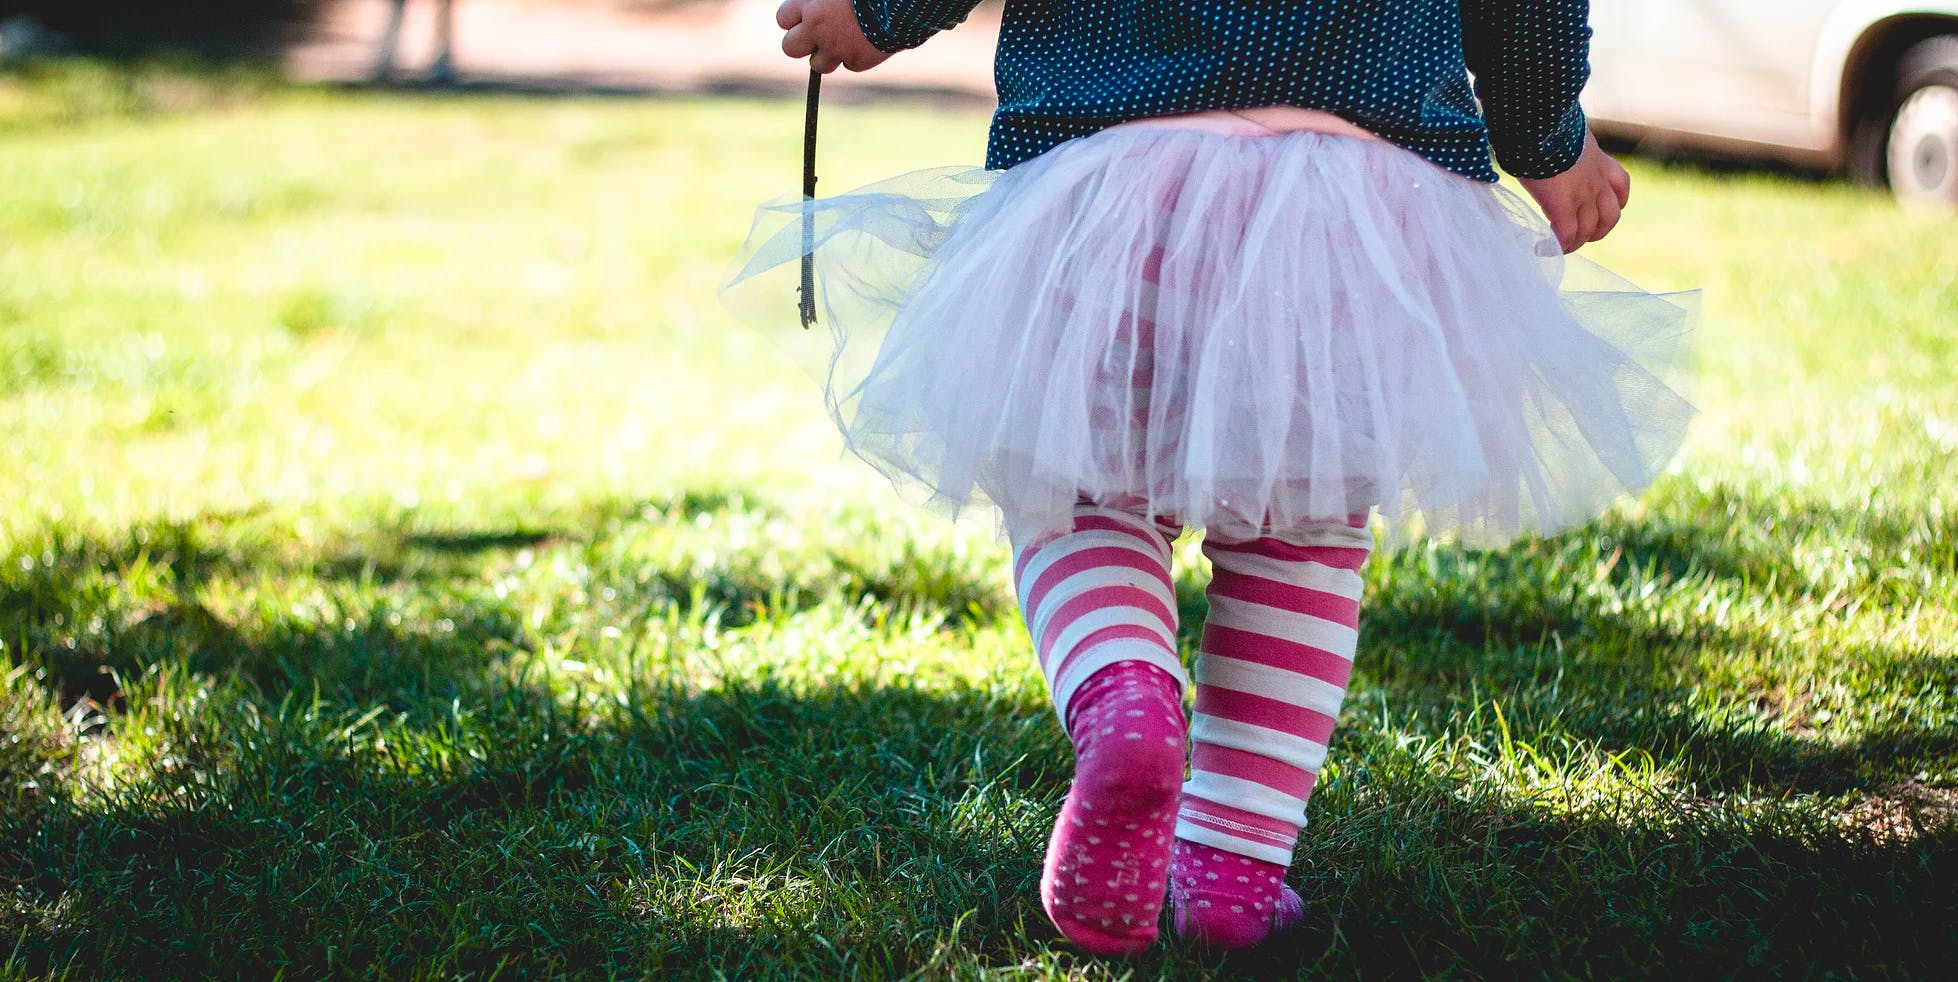 Girl with tutu walking in grass